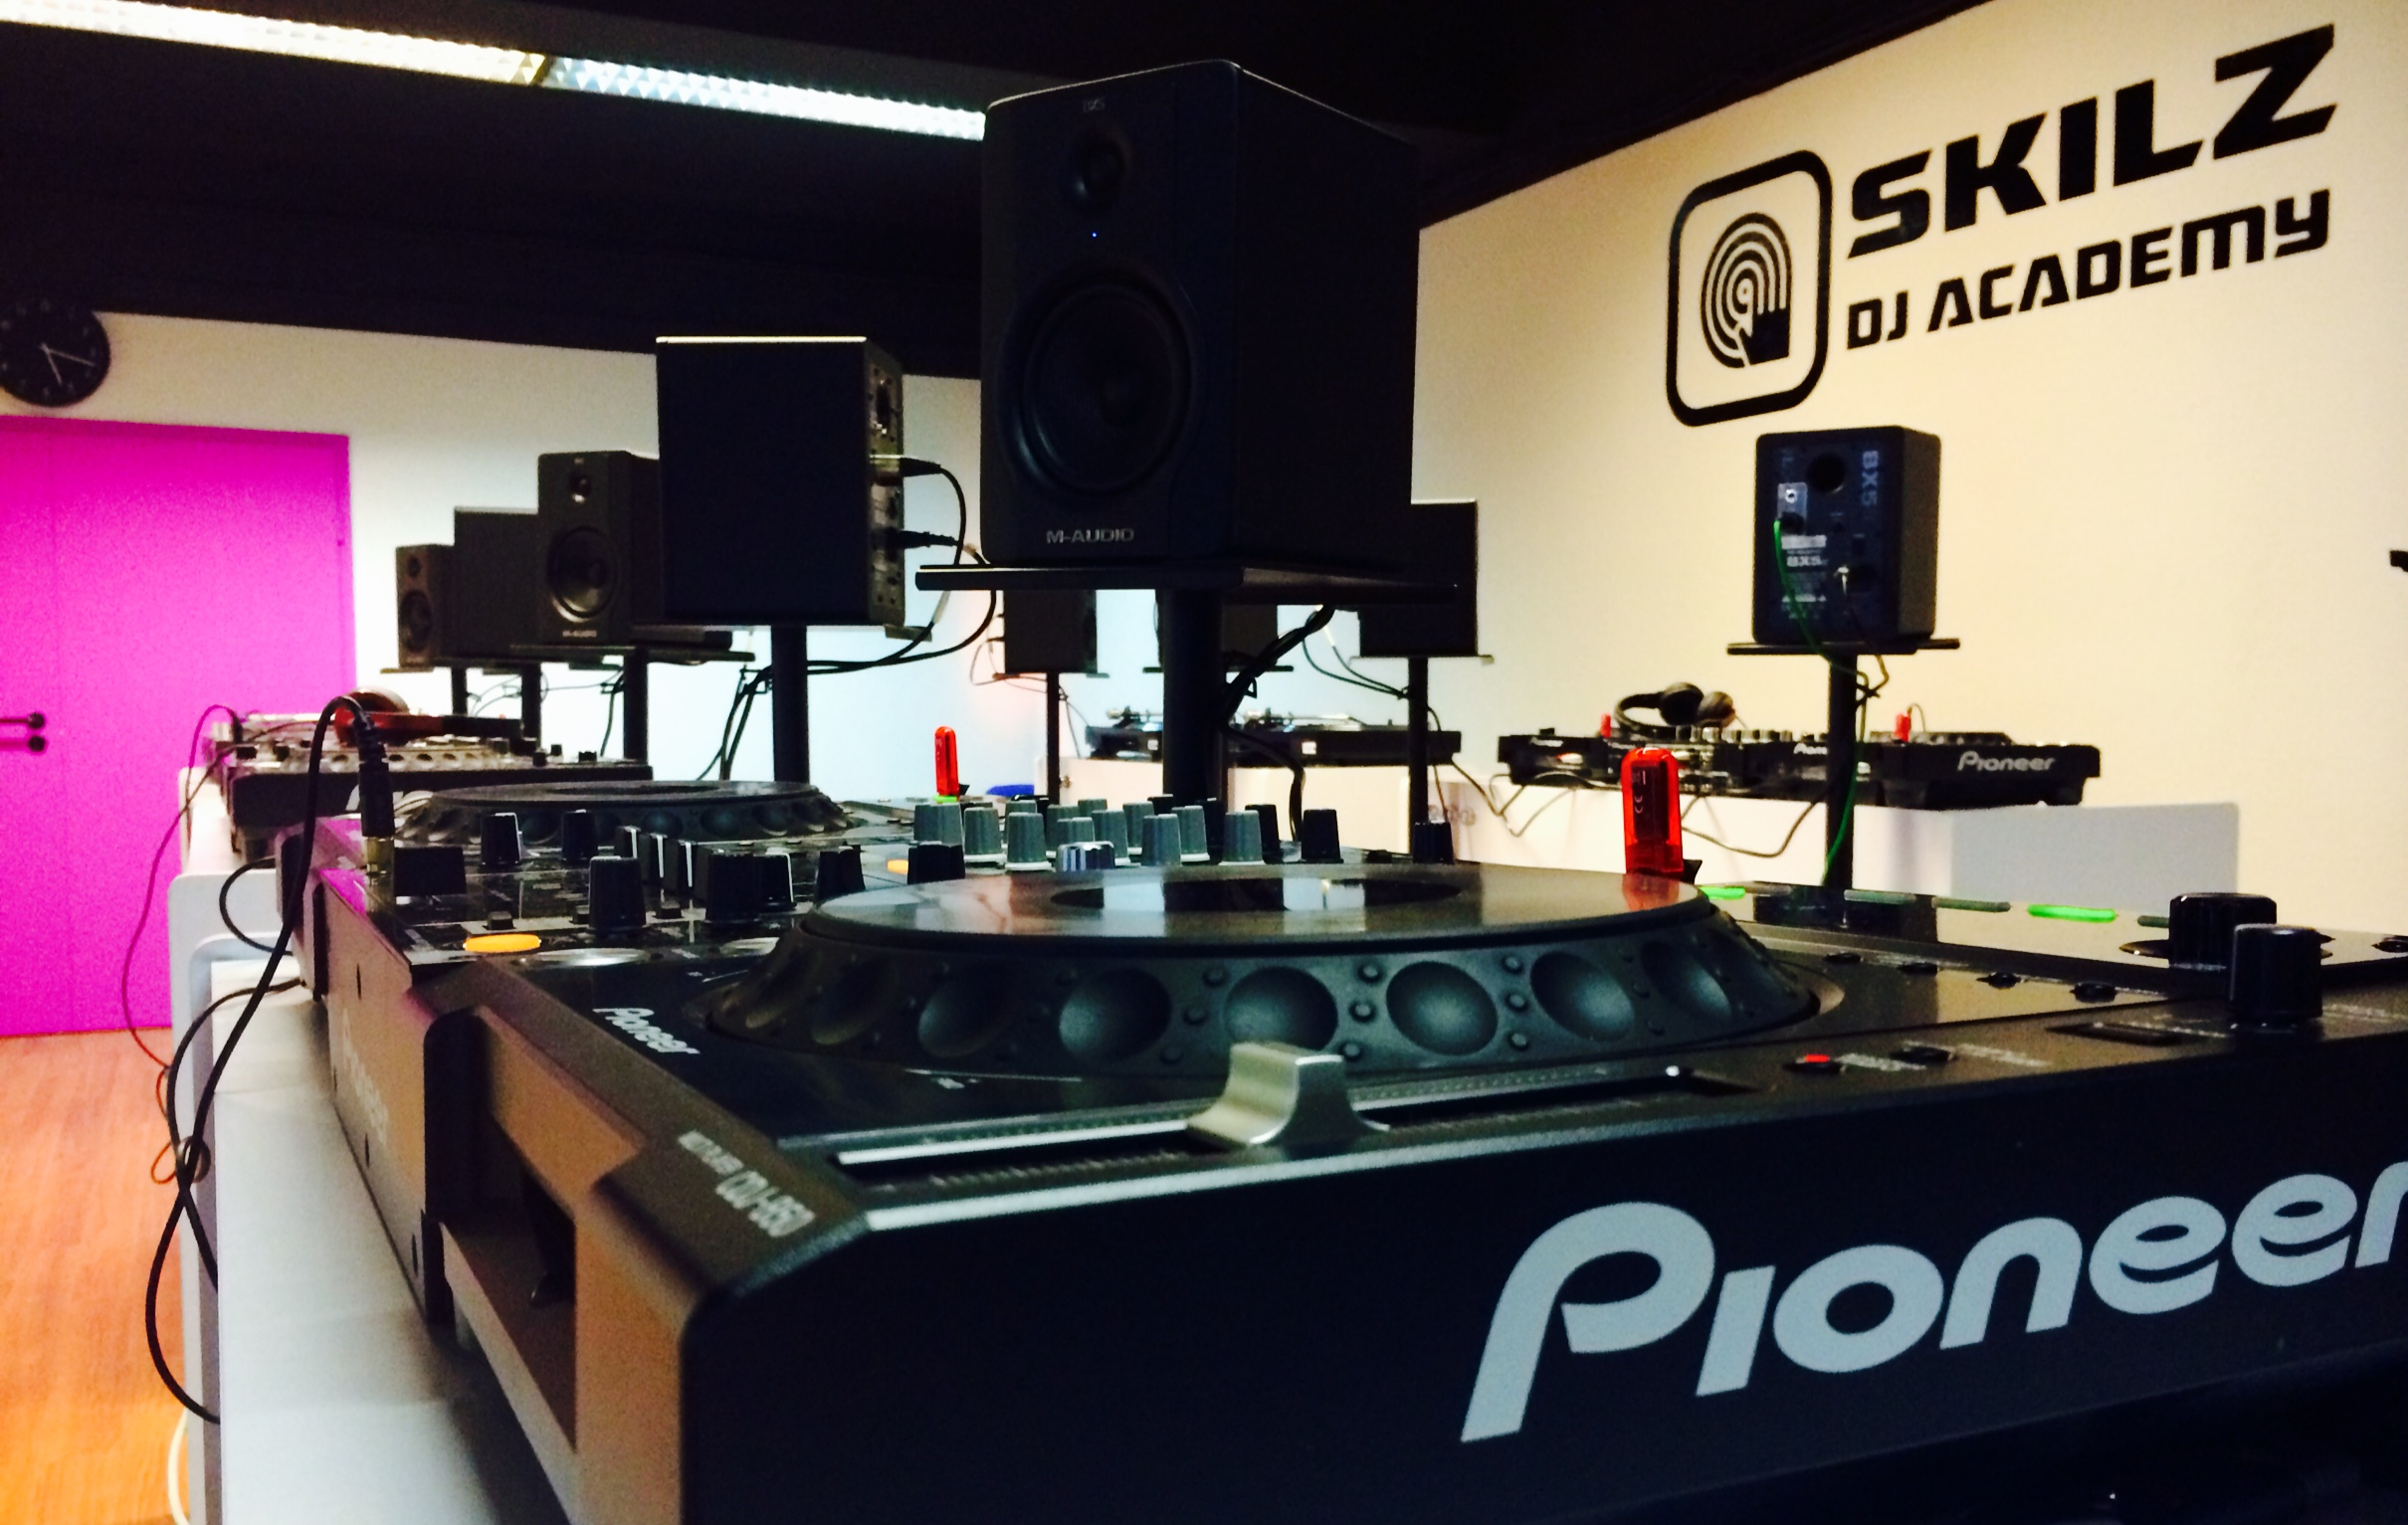 Skilz DJ Academy Training Room pic4